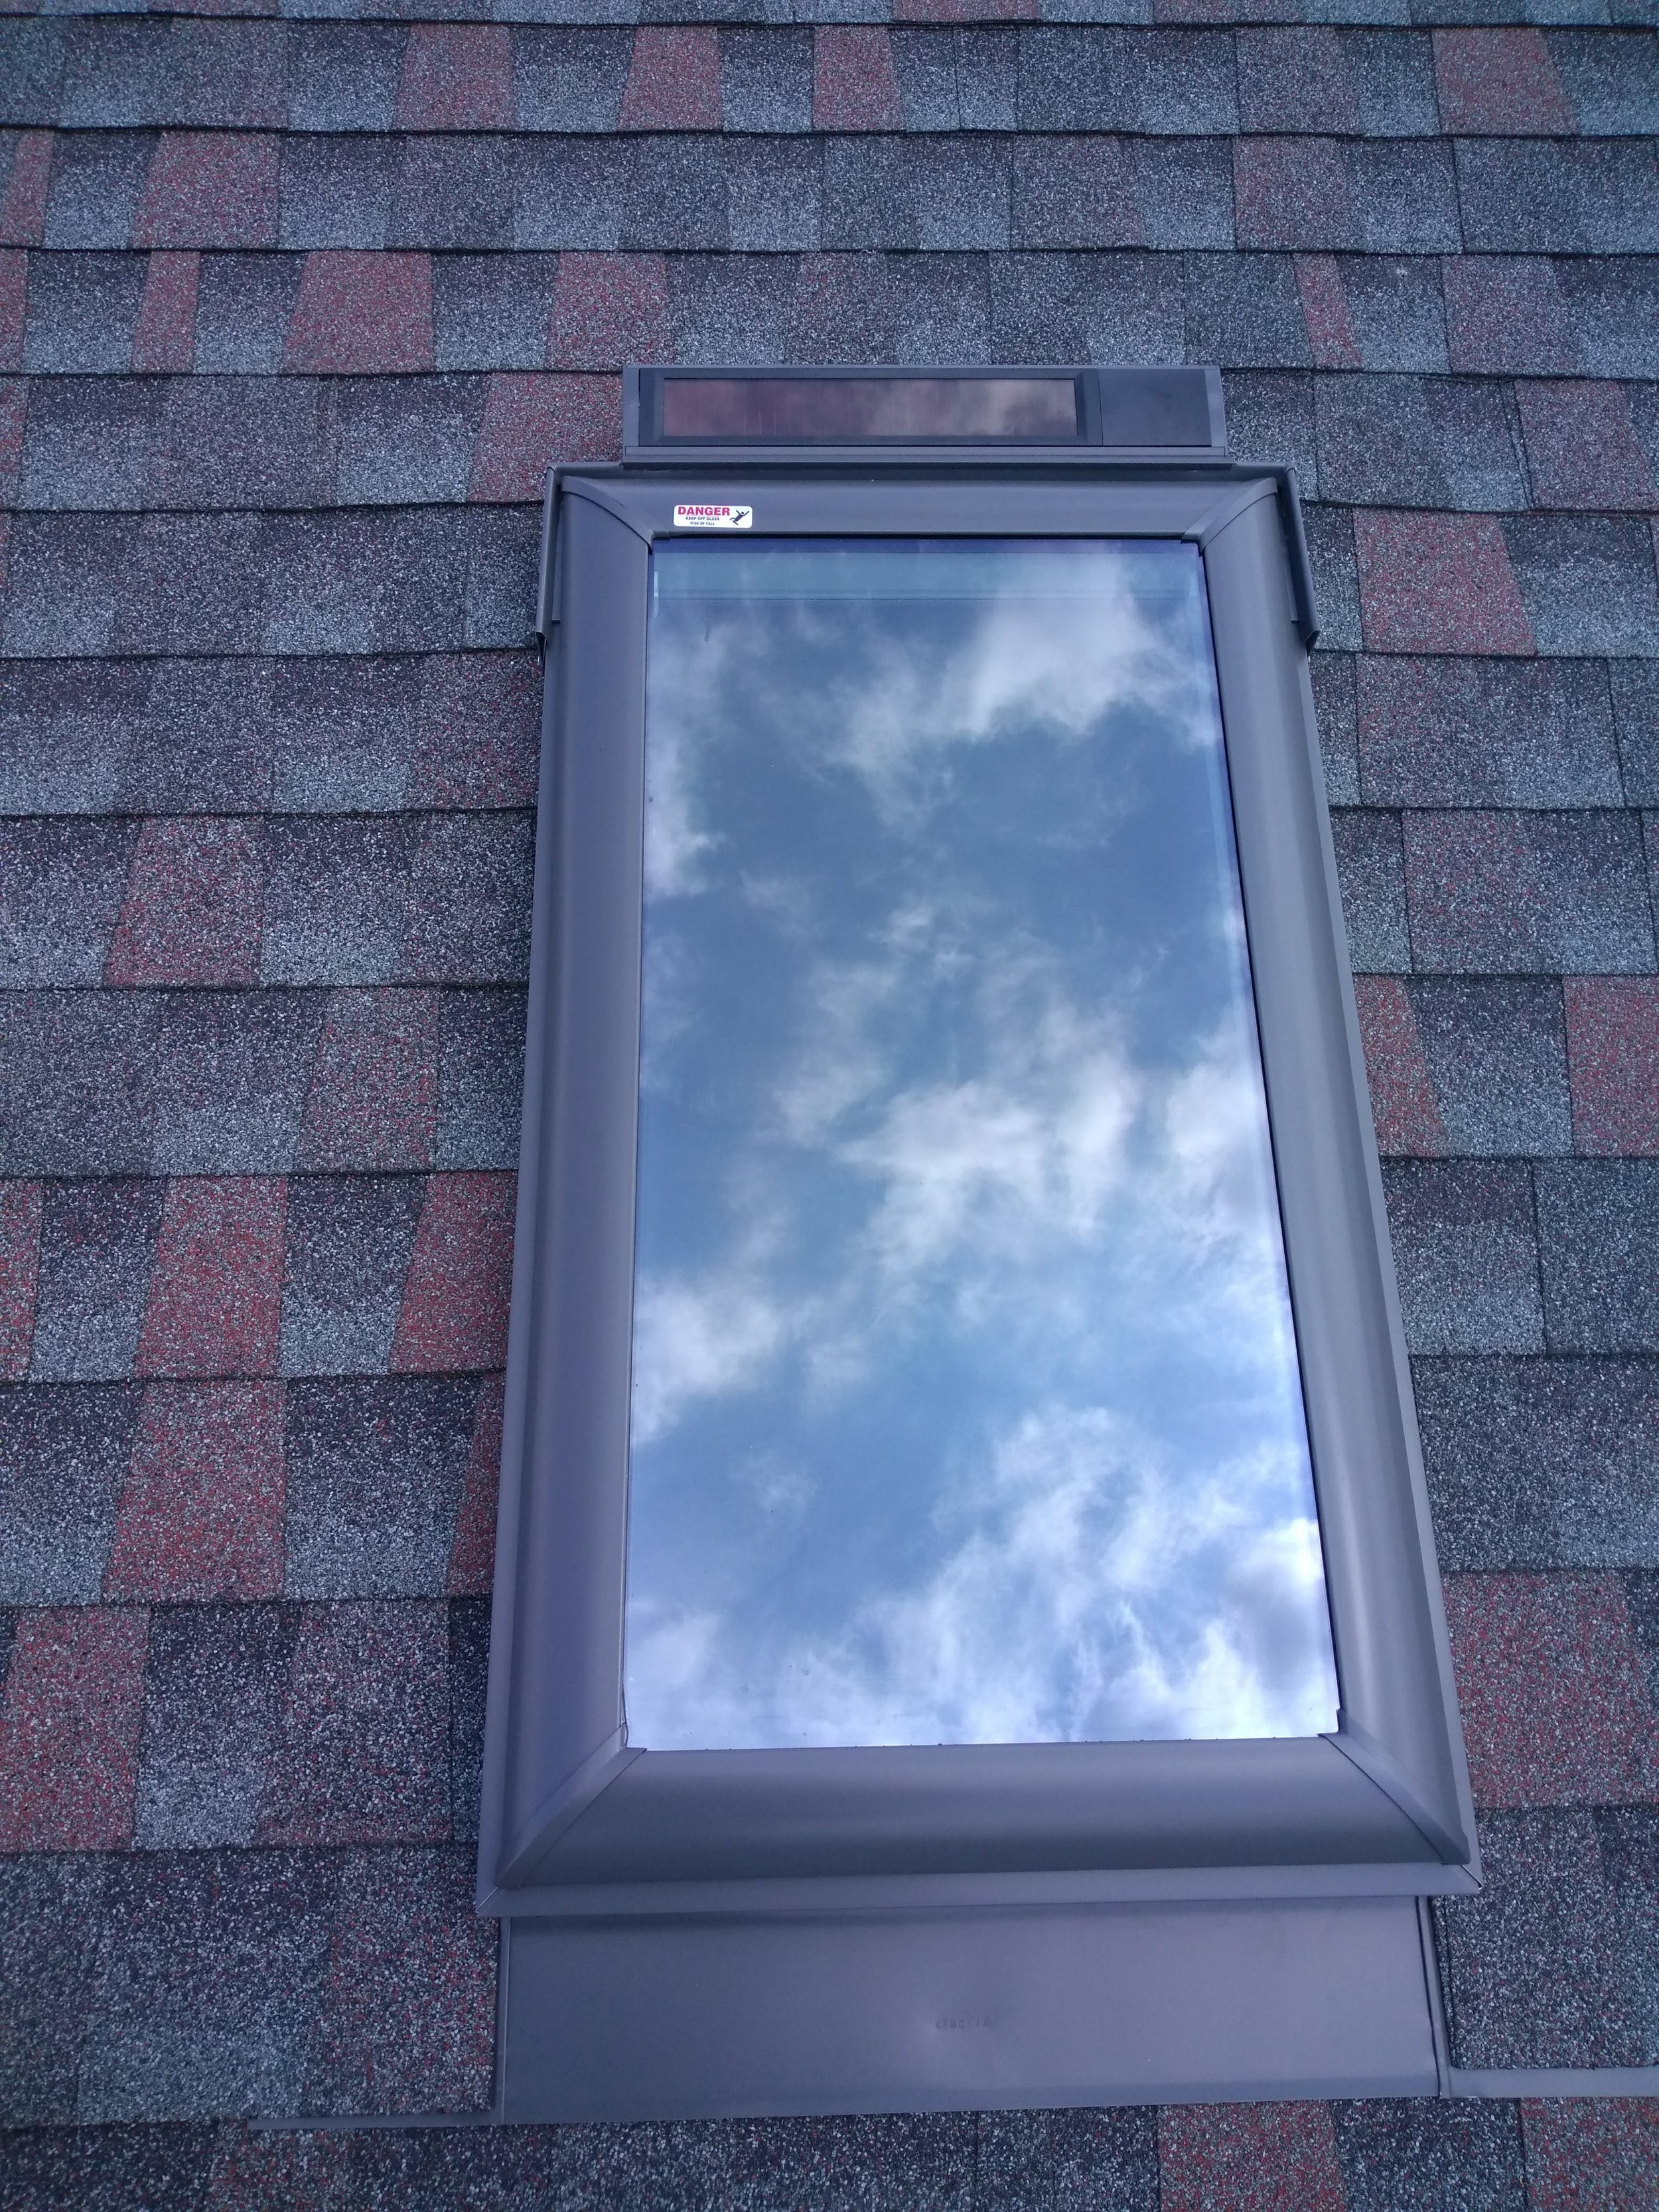 Installed a new skylight with a new Solar Powered Velux model.